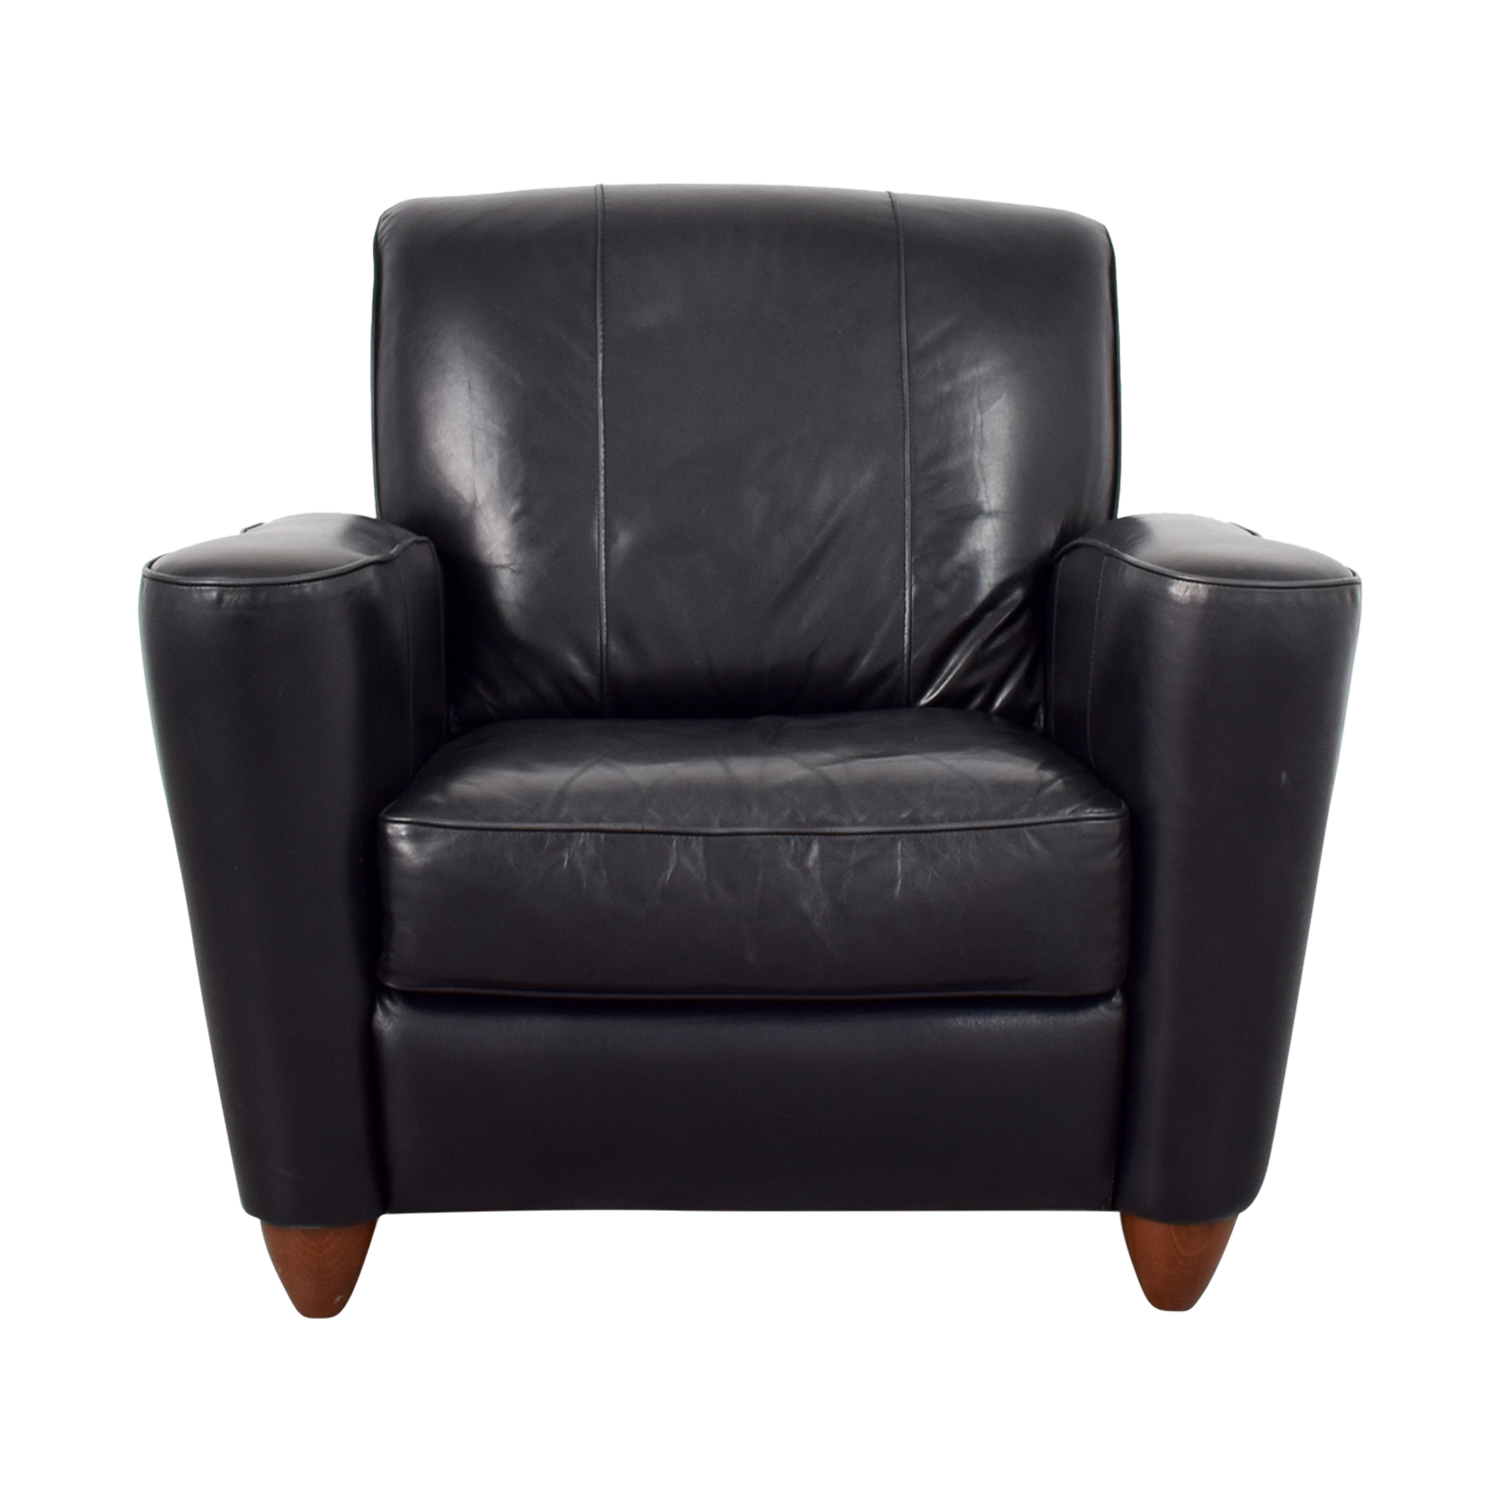 76 OFF  Leather Library Reading Chair  Chairs